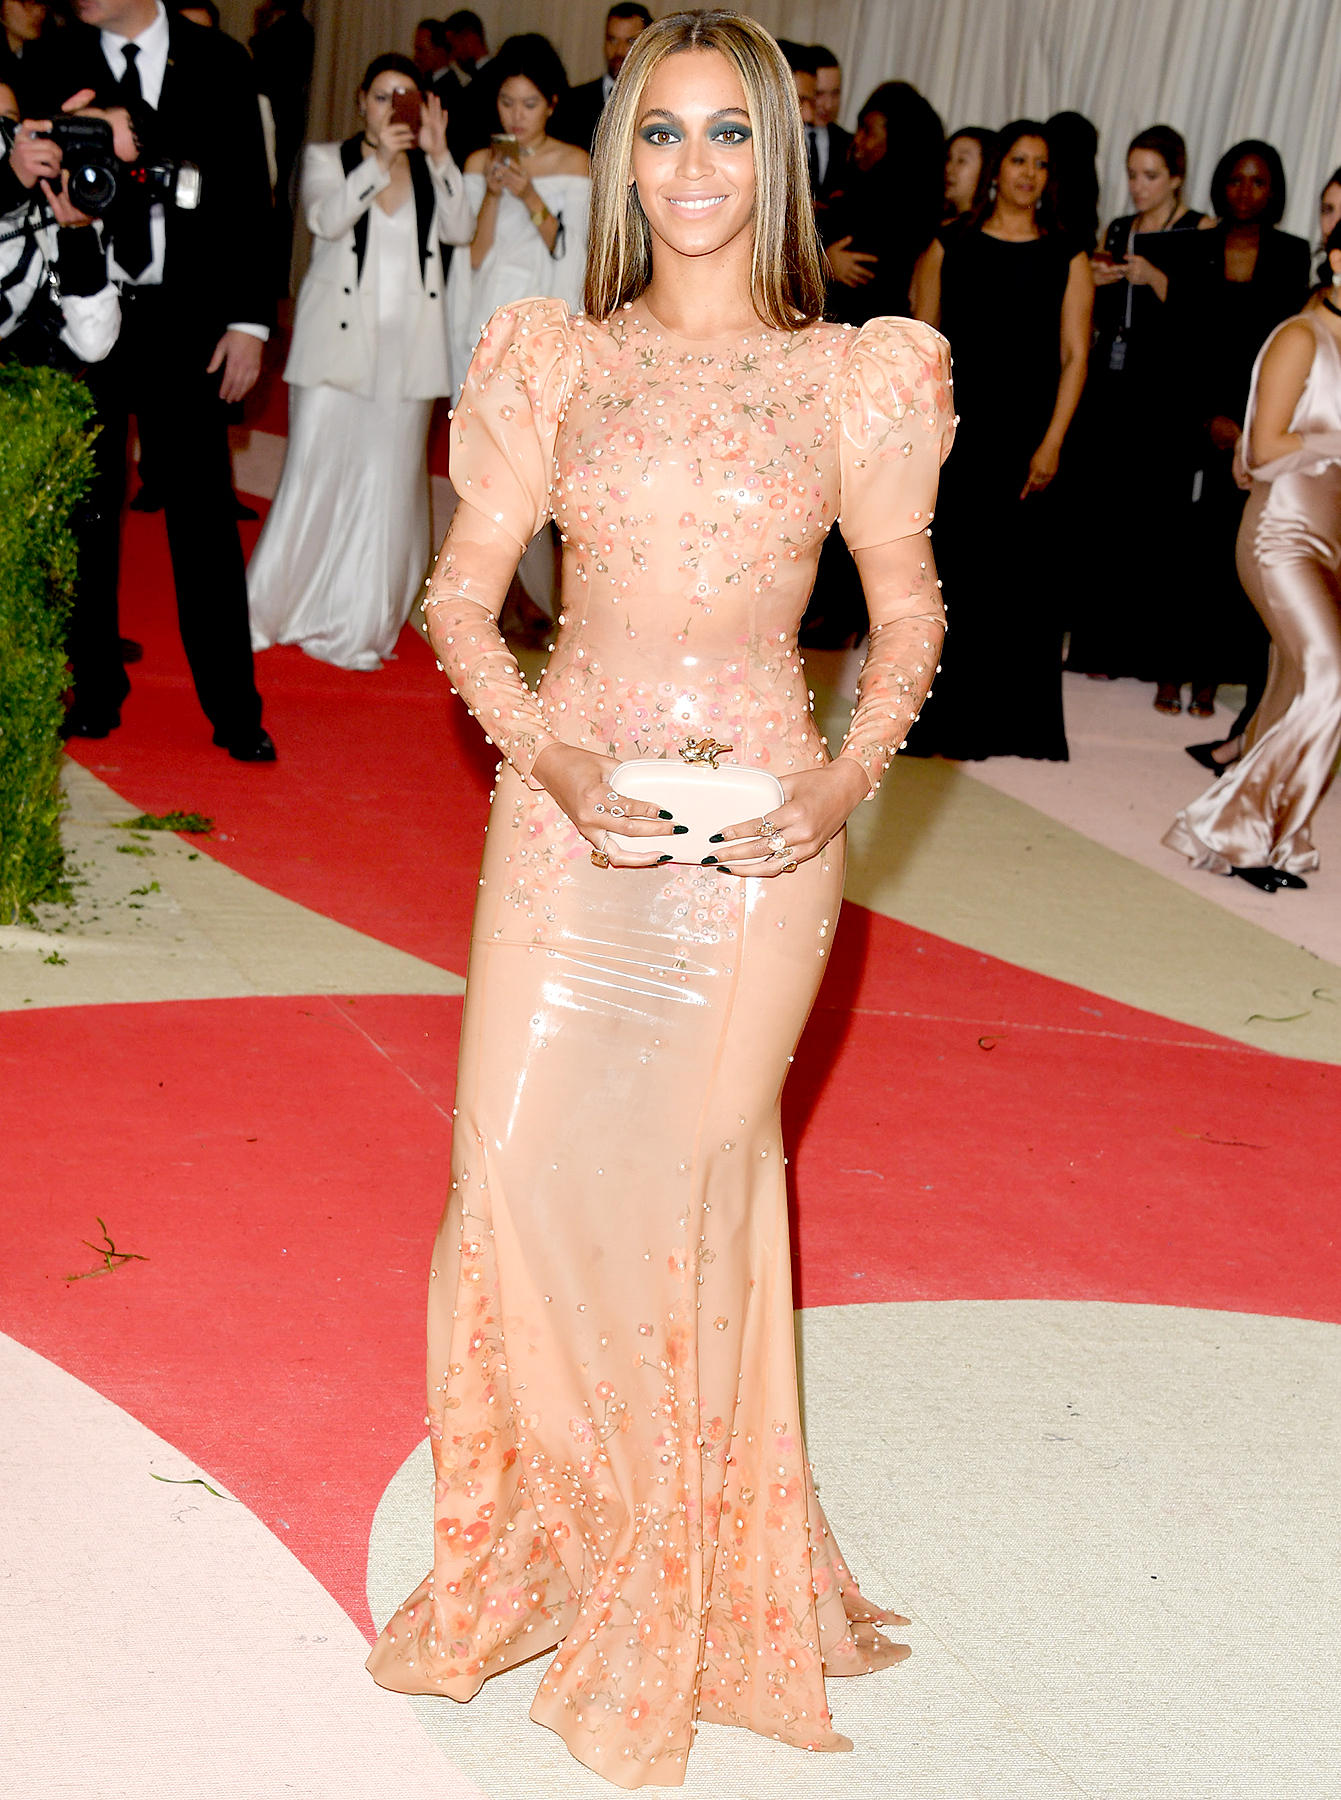 Beyonce Knowles attends the 'Manus x Machina: Fashion in an Age of Technology' Costume Institute Gala at the Metropolitan Museum of Art on May 2, 2016 in New York City.